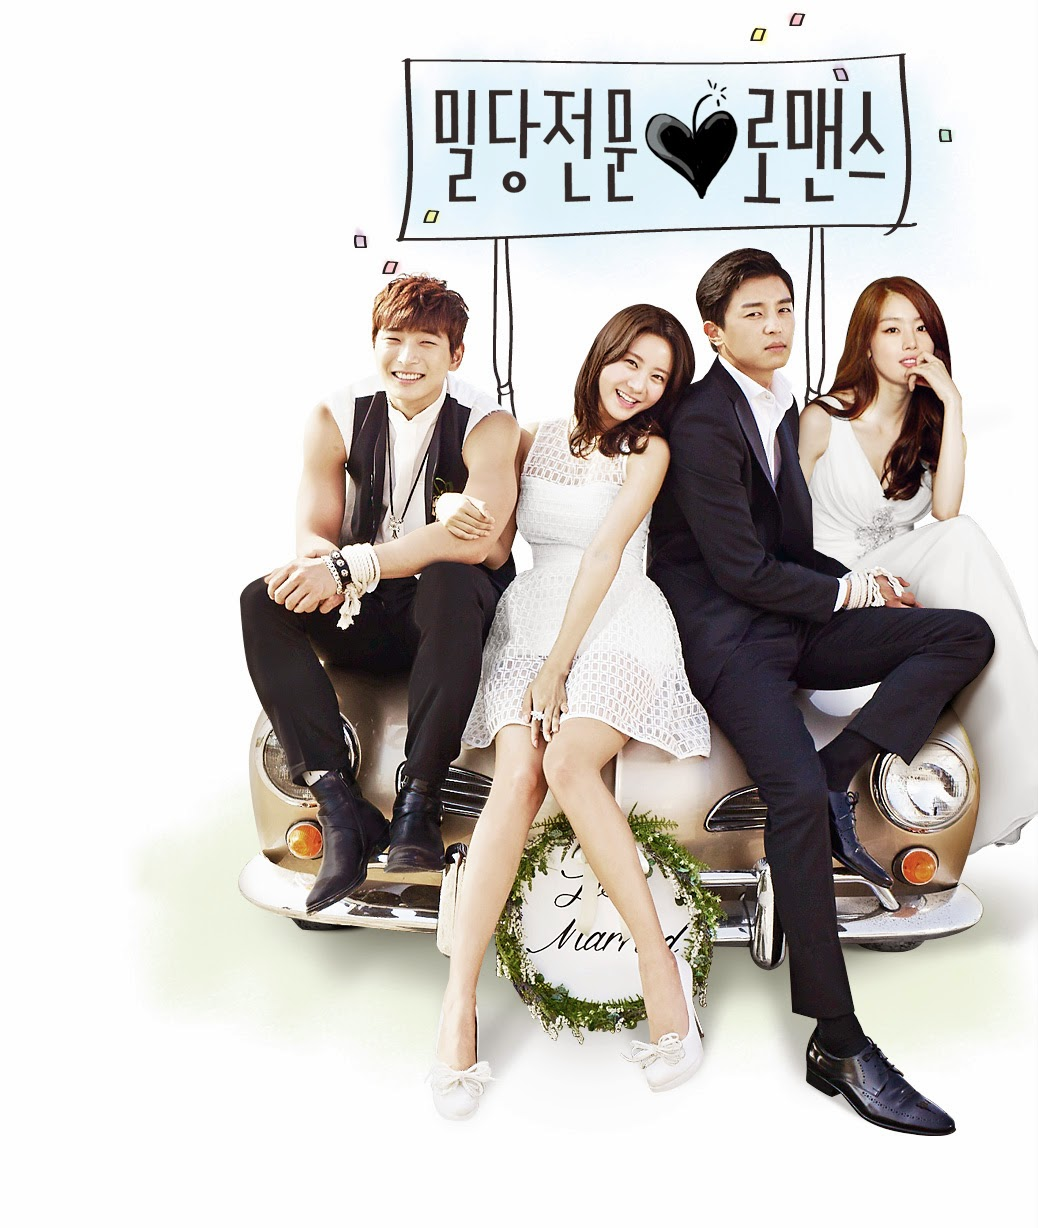 Marriage not dating 09 vostfr partie 2 thanks